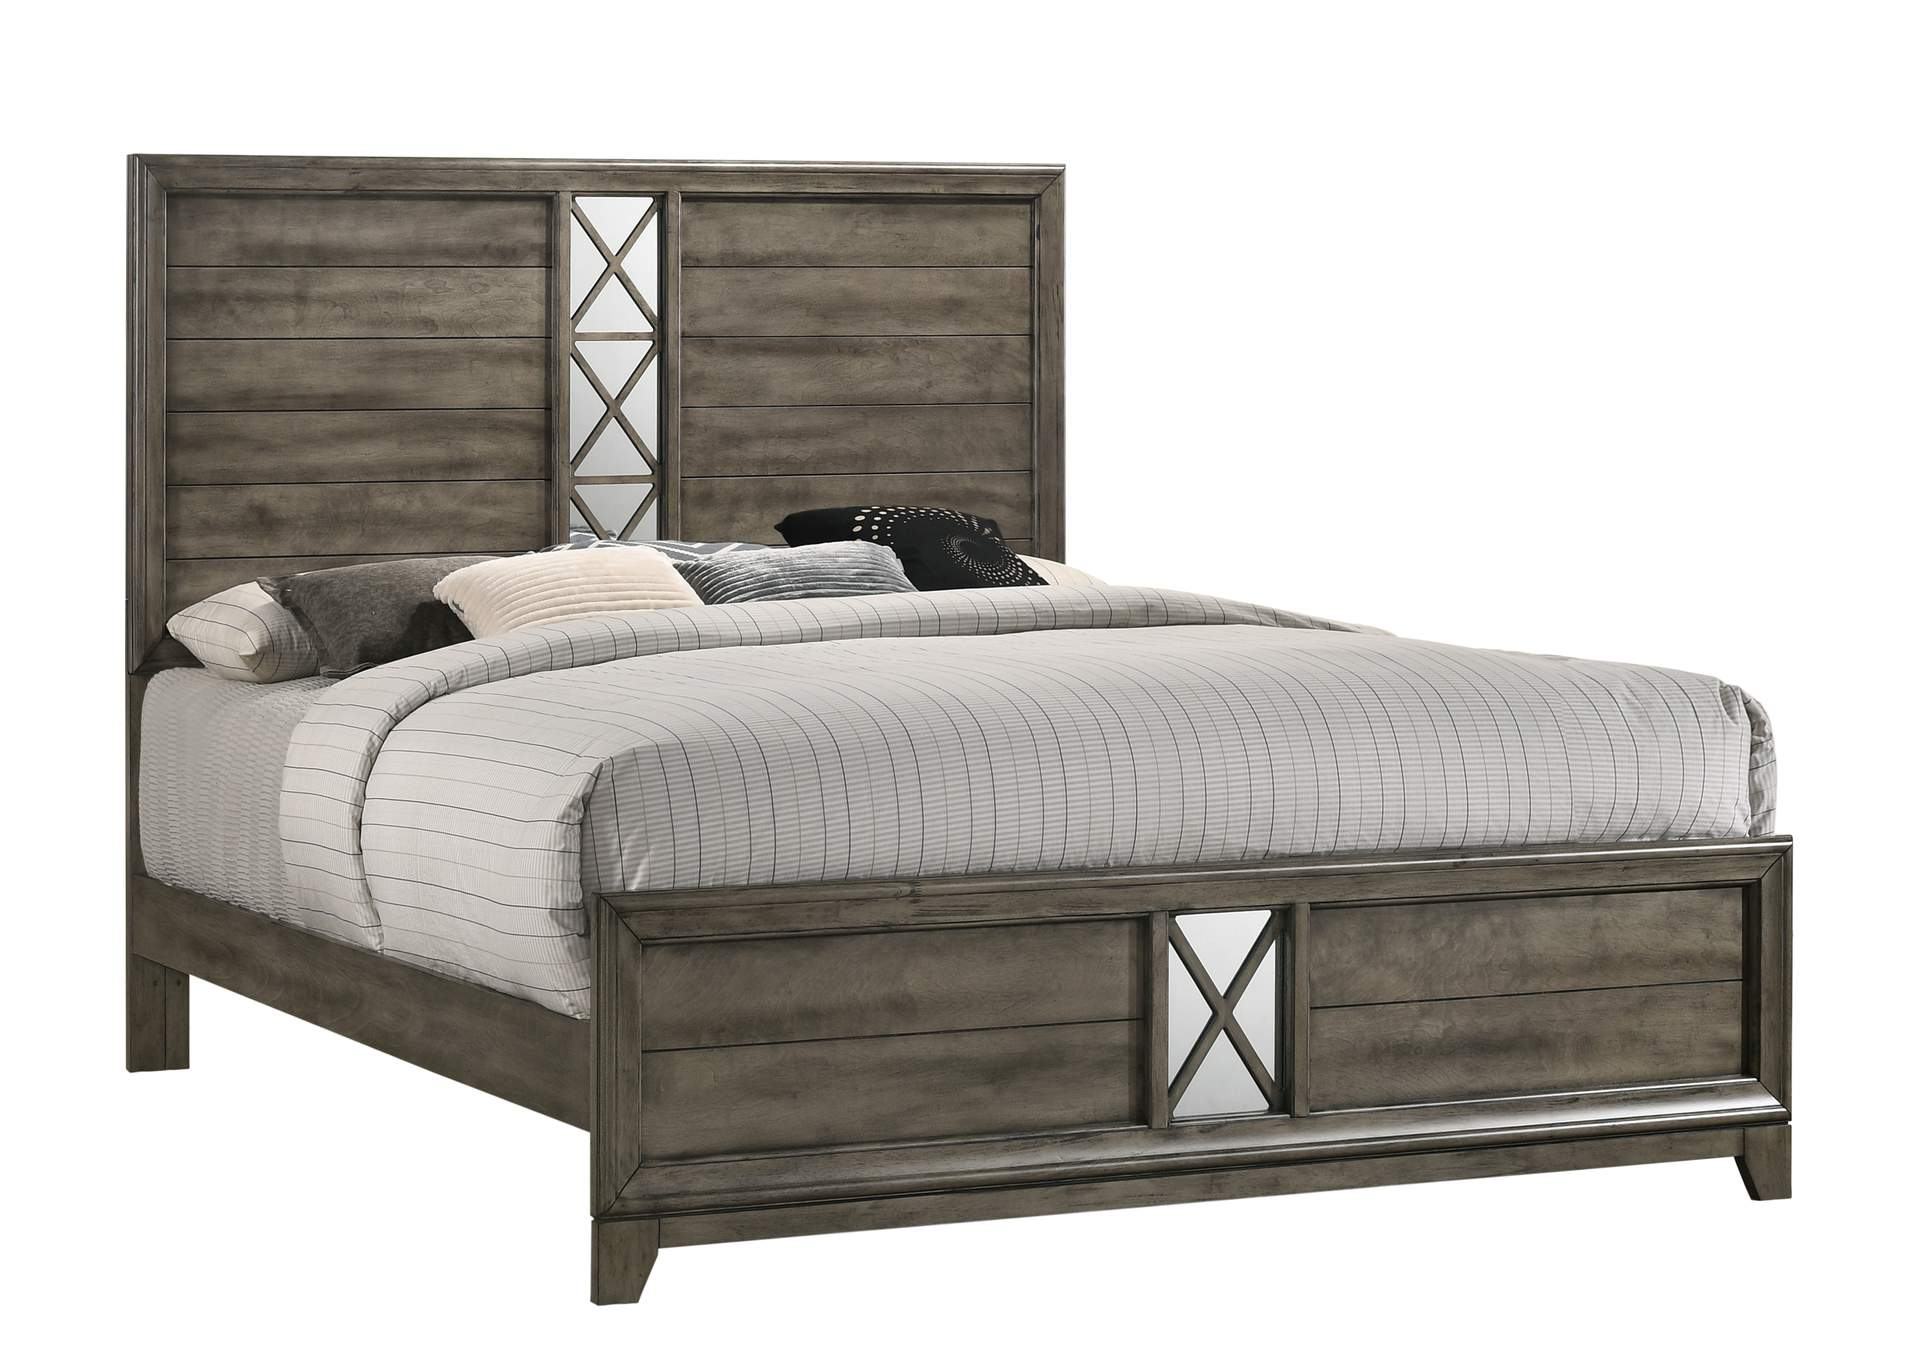 1070 Addison Queen Bed